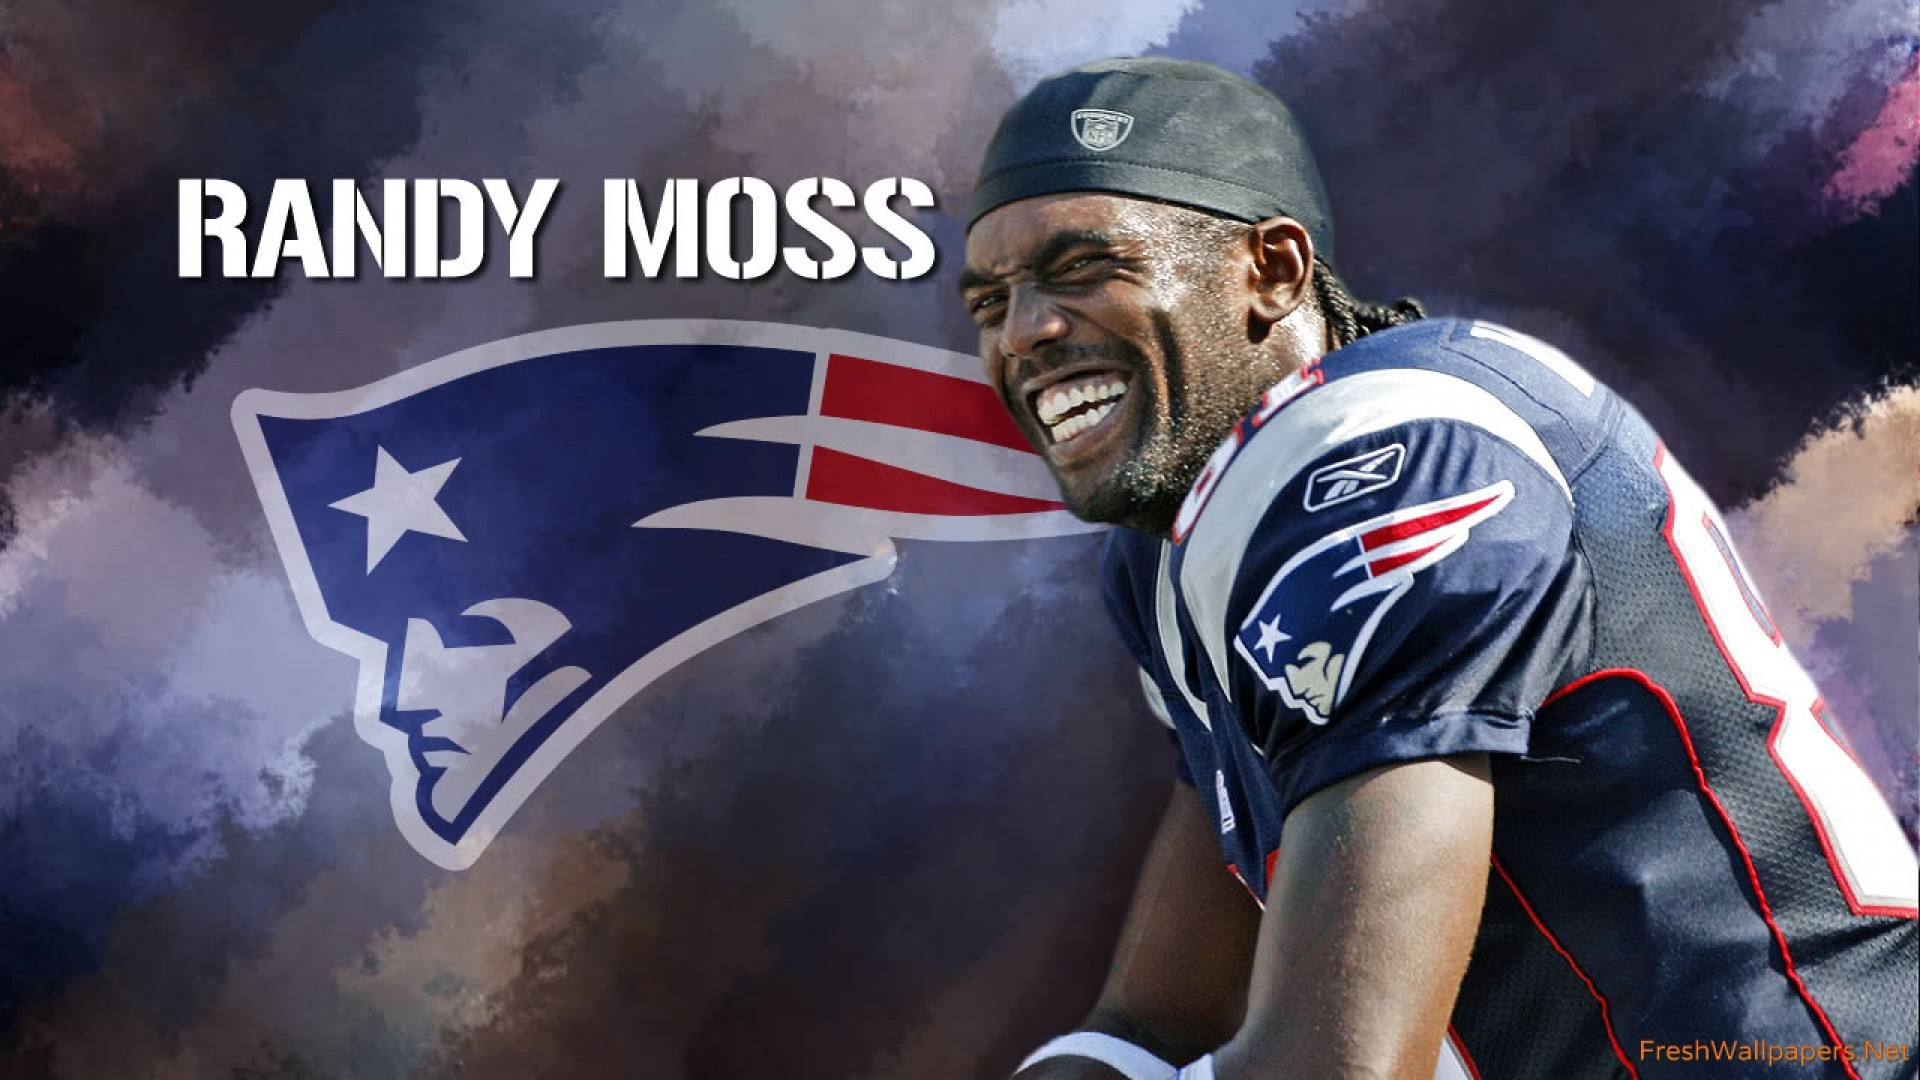 1920x1080 randy-moss Wallpaper: